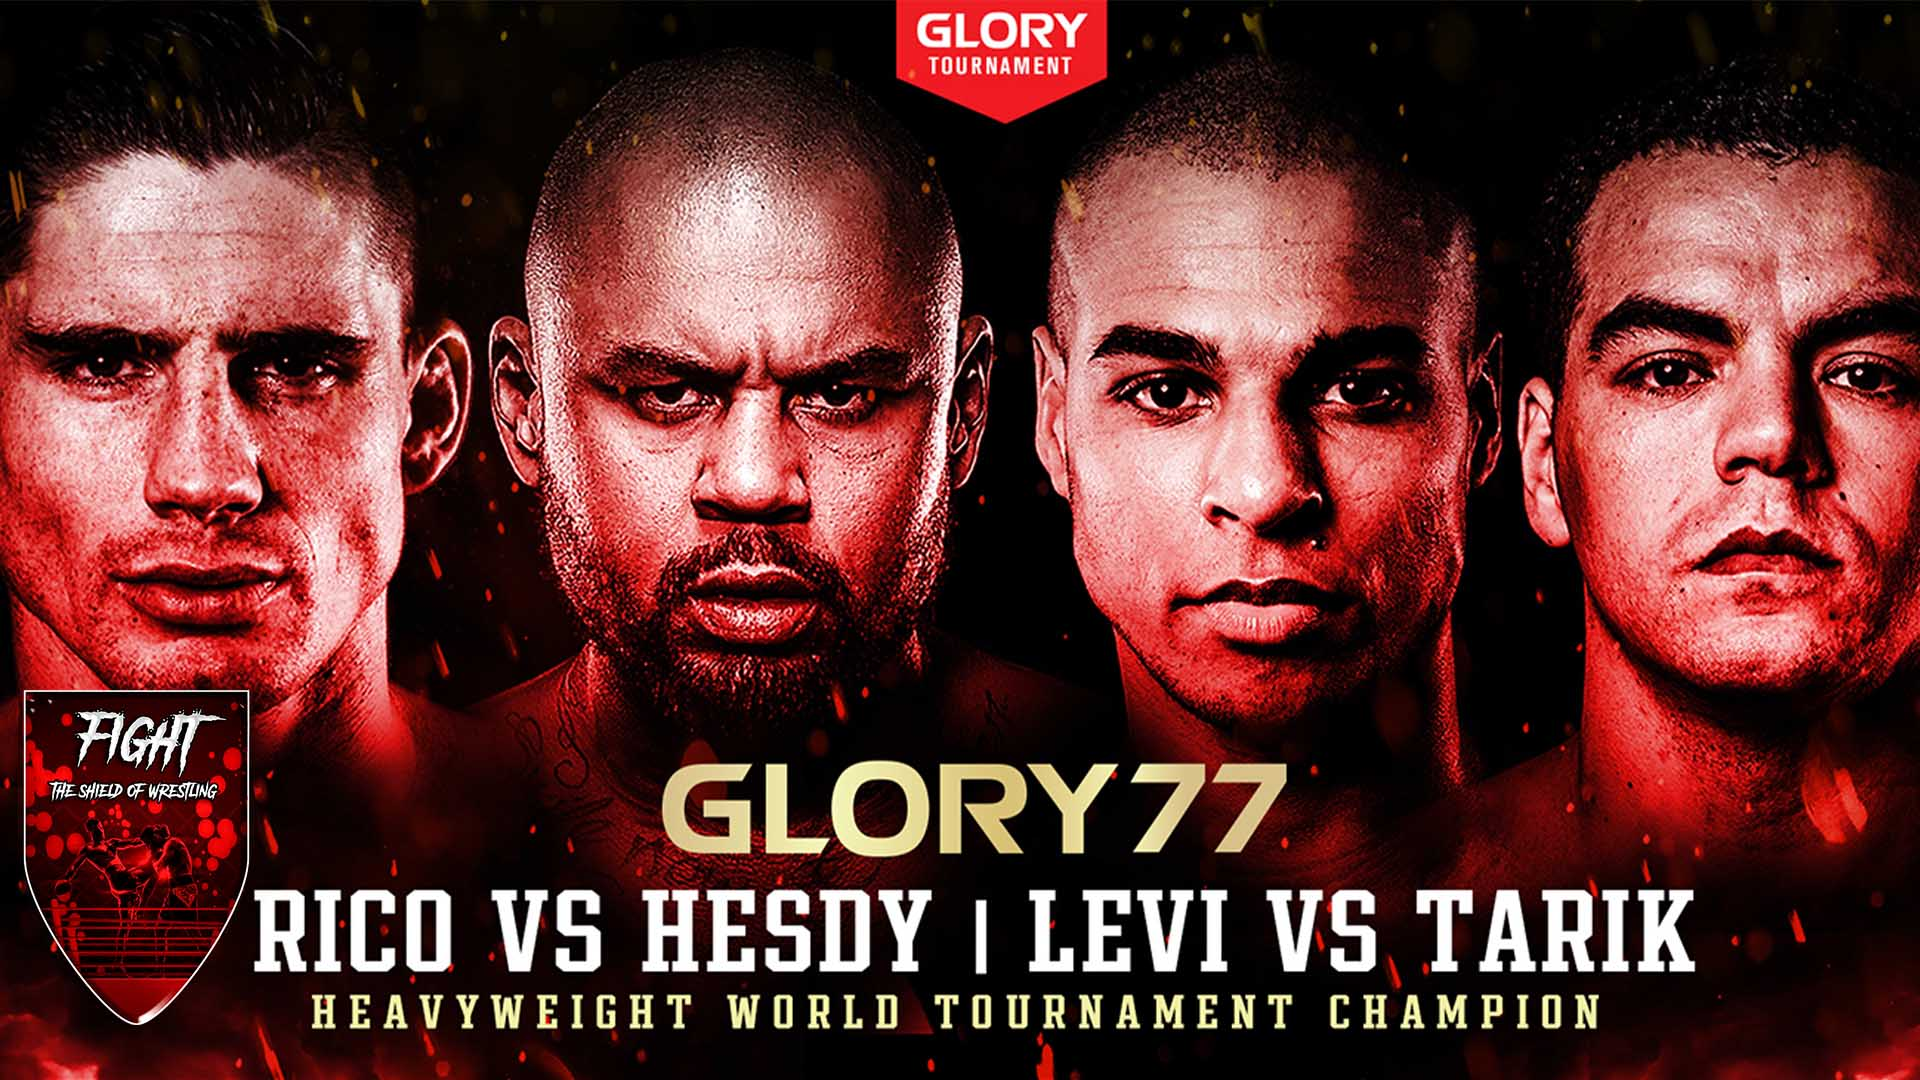 GLORY 77: chi ha vinto l'Heavyweight Tournament?